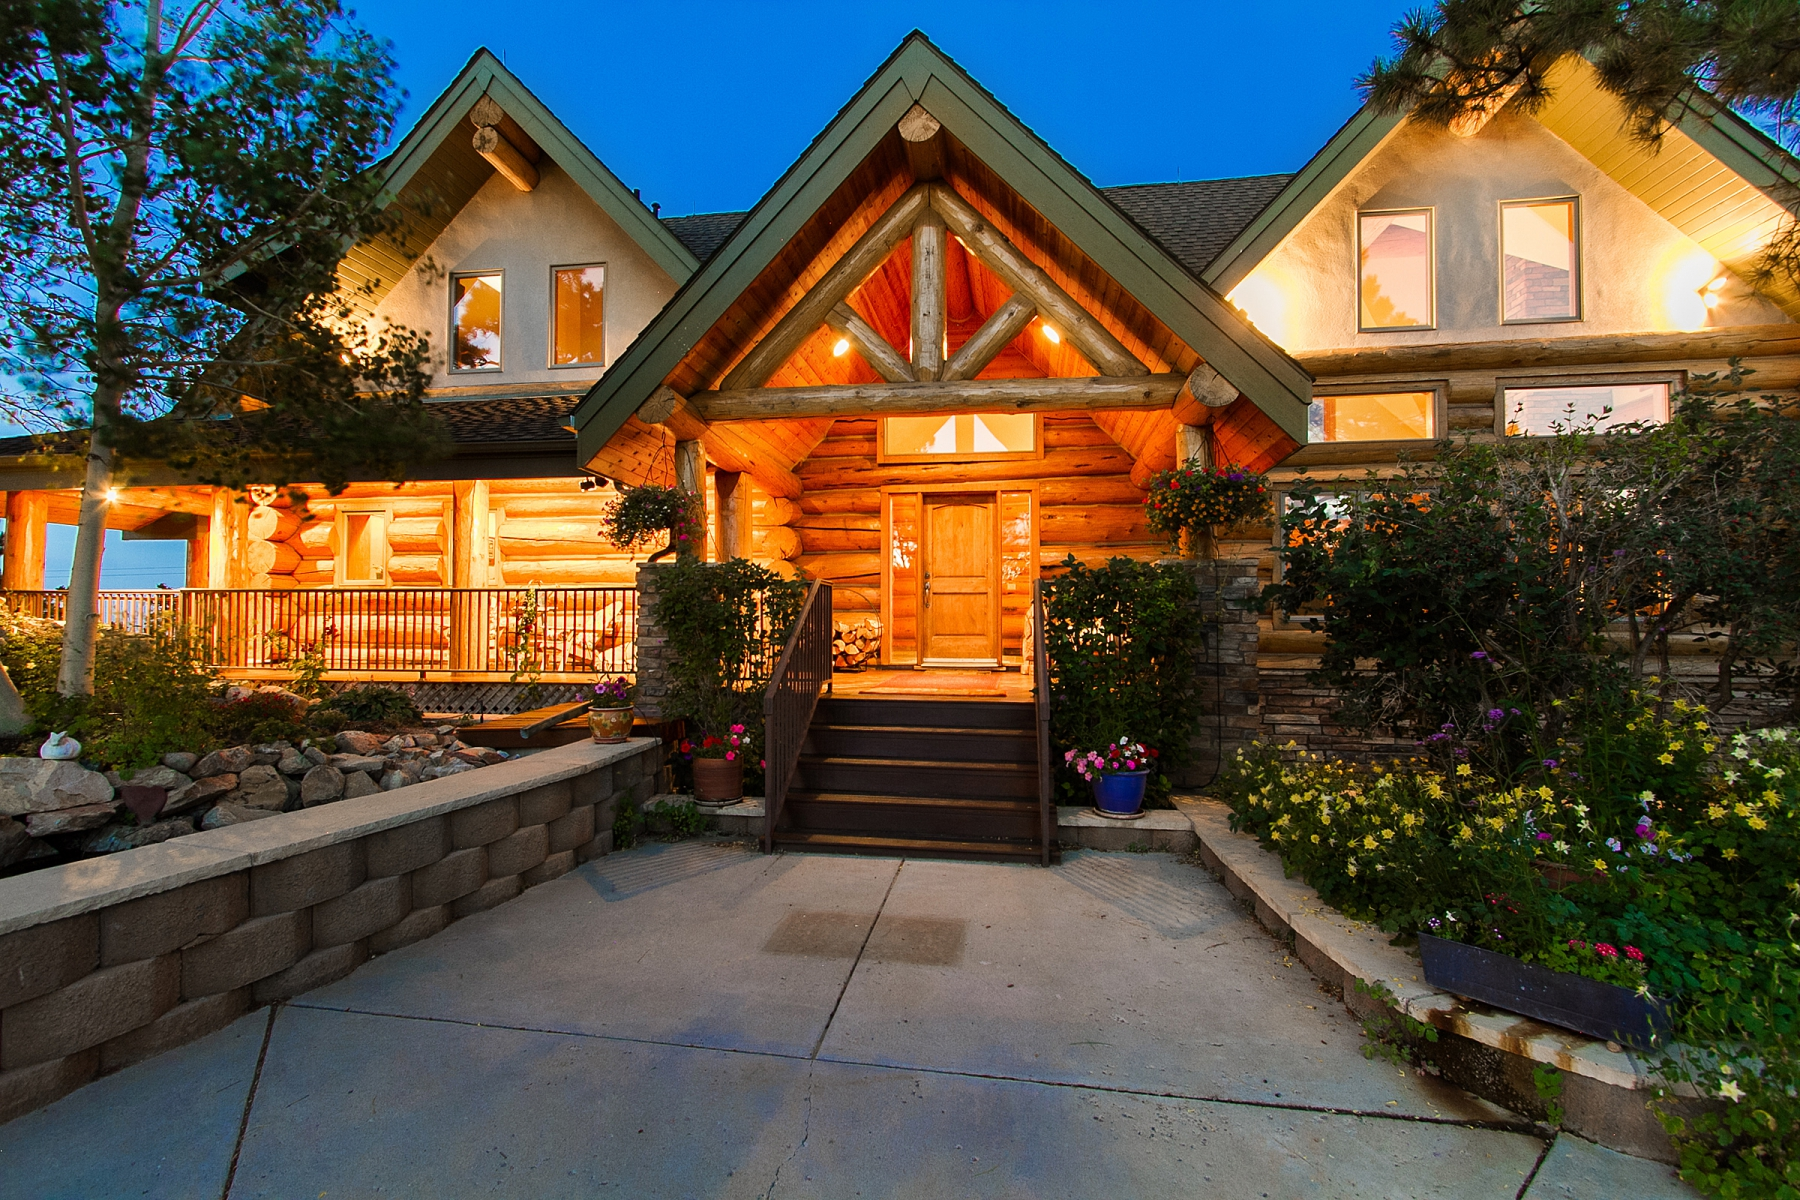 Single Family Home for Sale at Mountain Serenity with City Views 10973 Mill Hollow Road Littleton, Colorado, 80127 United States